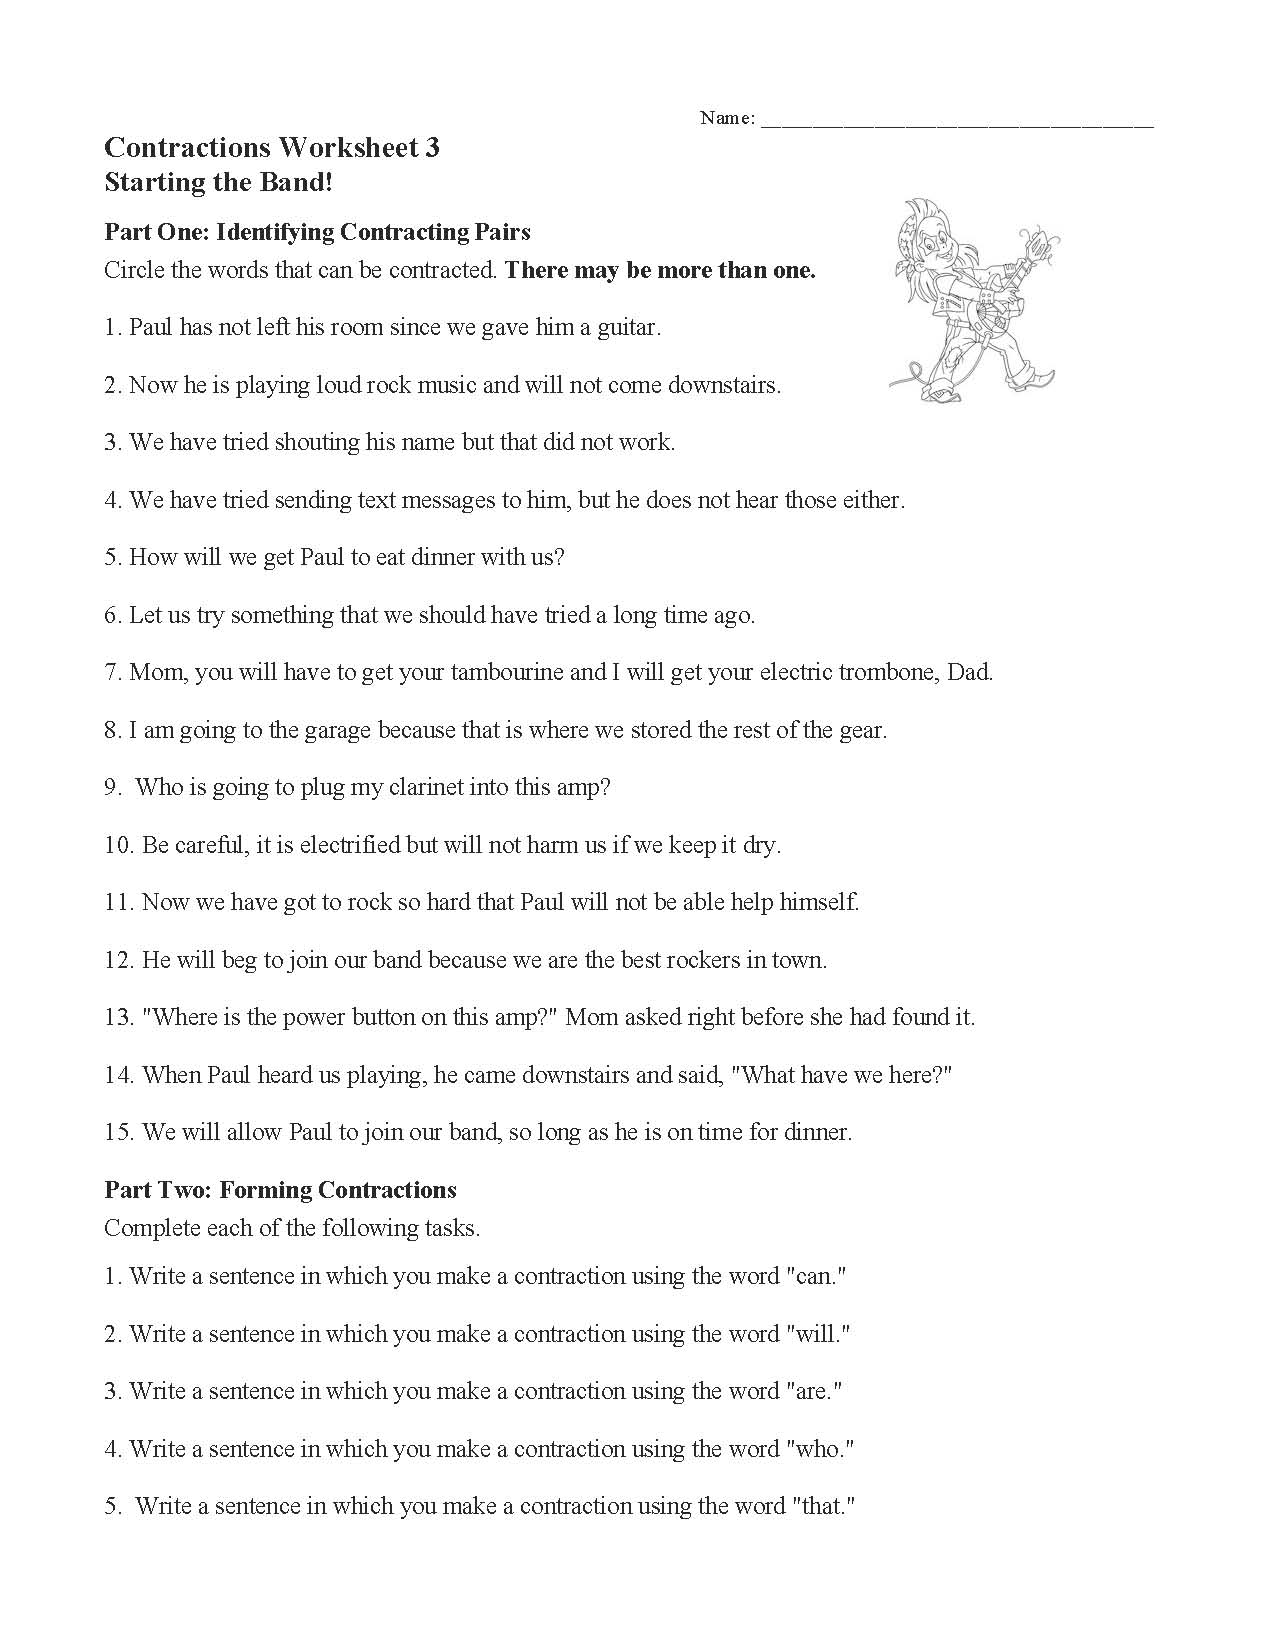 Contractions Worksheet 3